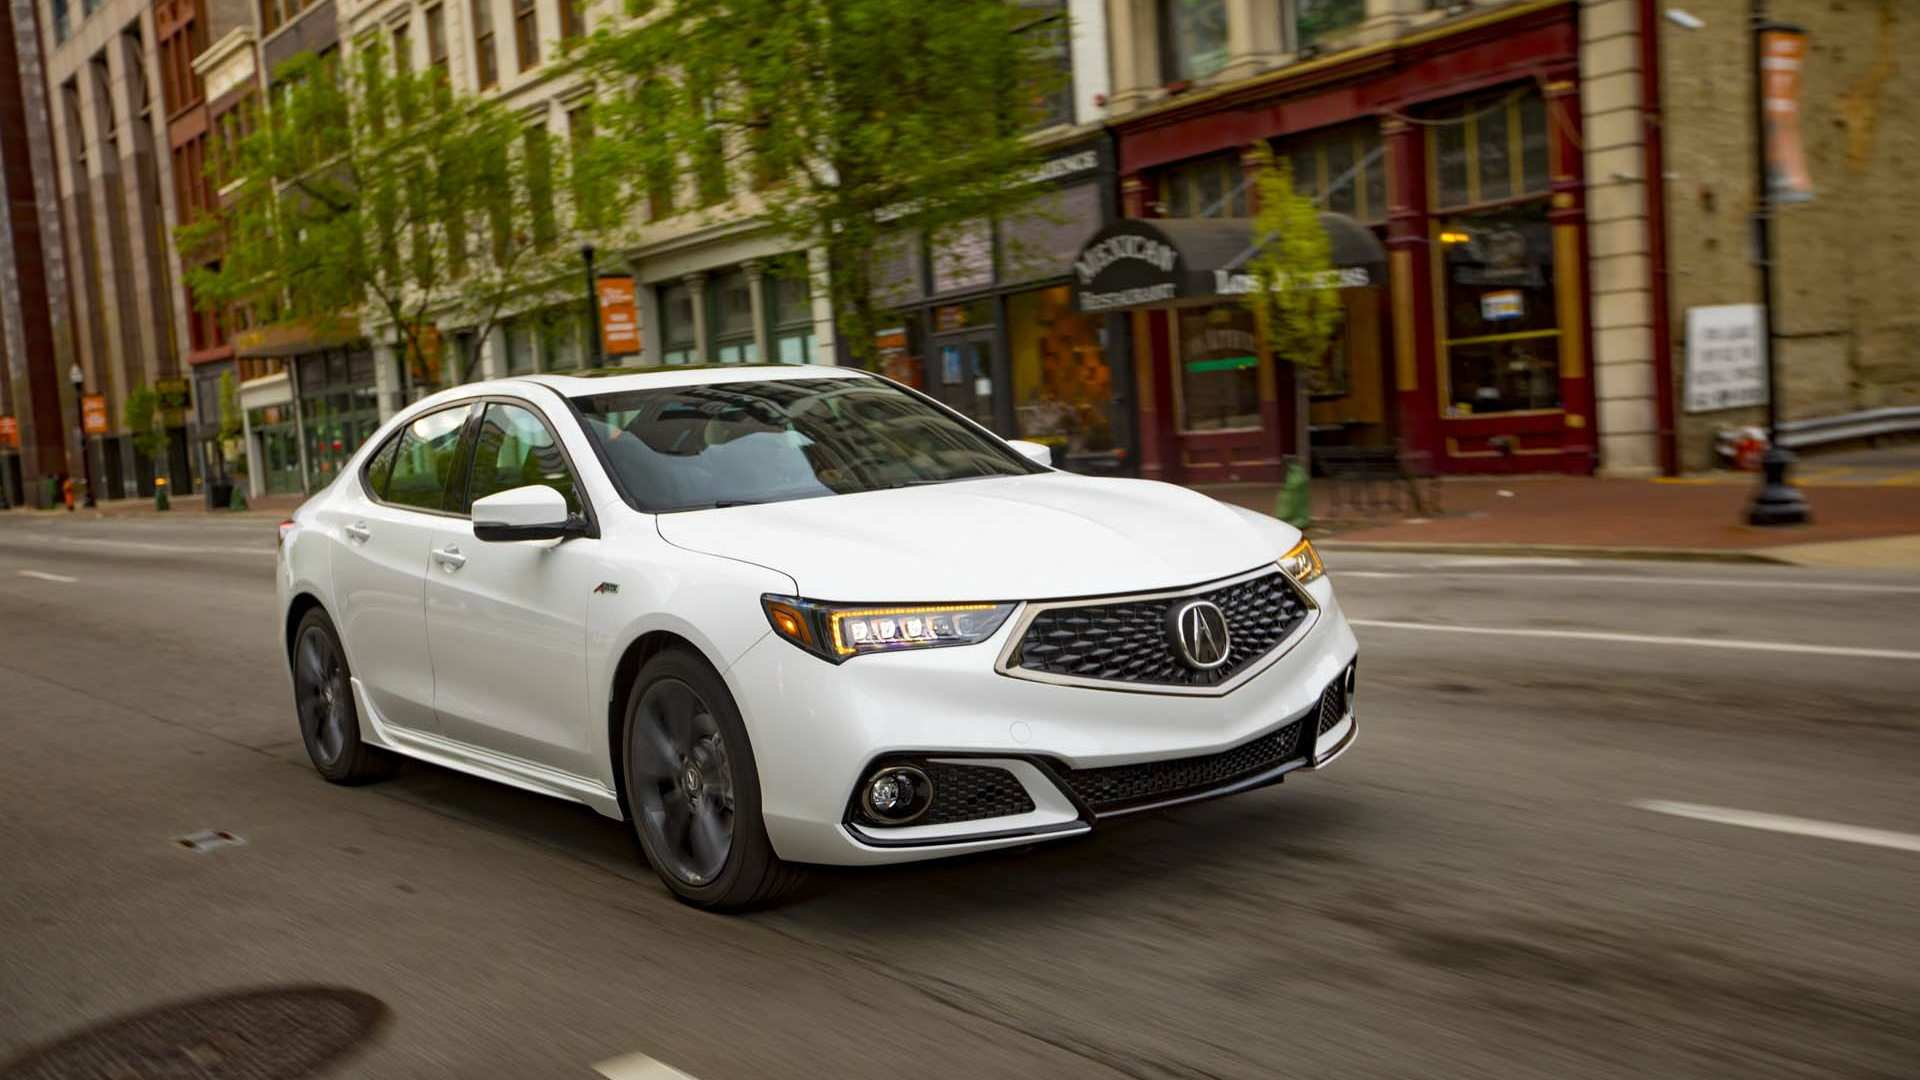 14 Gallery of 2020 Acura Tlx Release Date Specs and Review with 2020 Acura Tlx Release Date